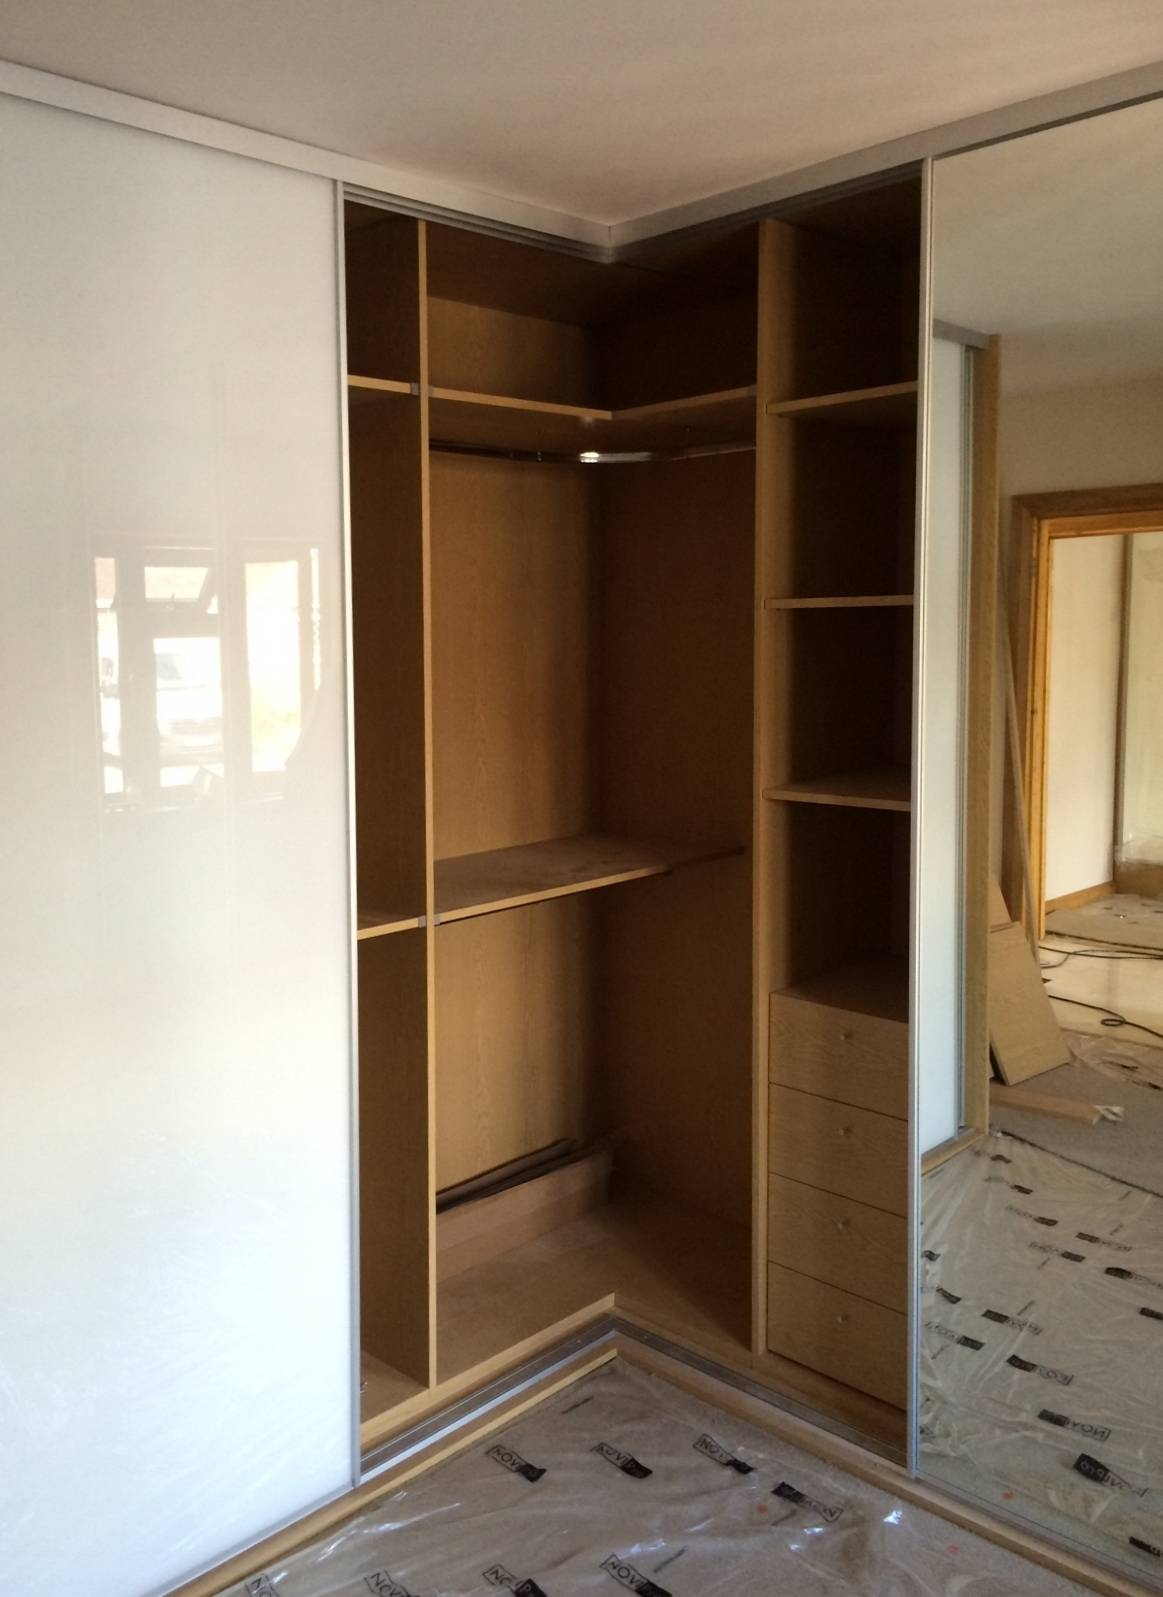 Sliding Wardrobe Doors And Wardrobe Interiors | Corner & L Shaped Inside Curved Corner Wardrobe Doors (View 29 of 30)